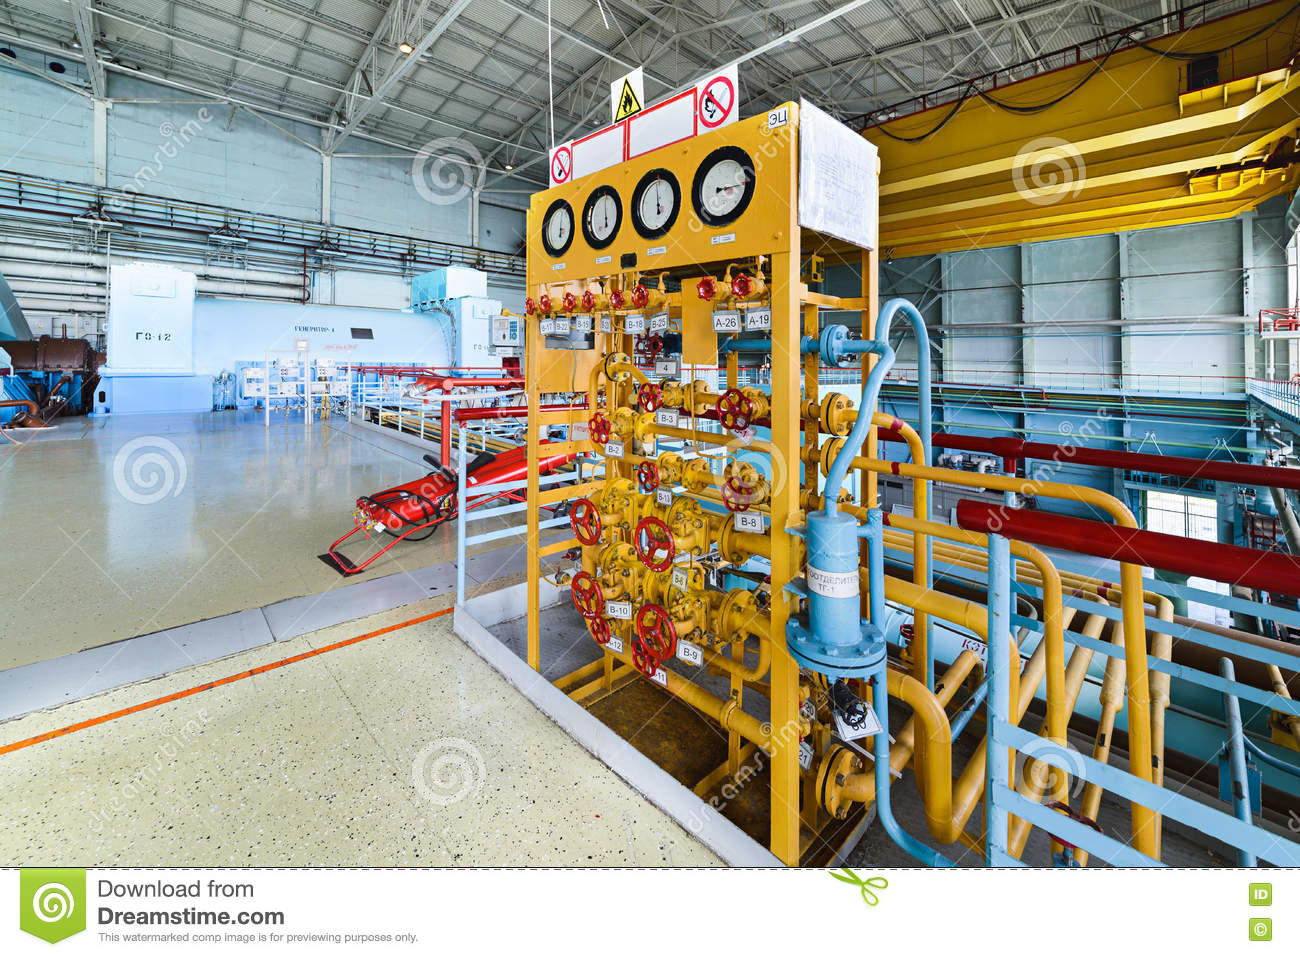 Gas distribution position in a nuclear power plant the turbine room.